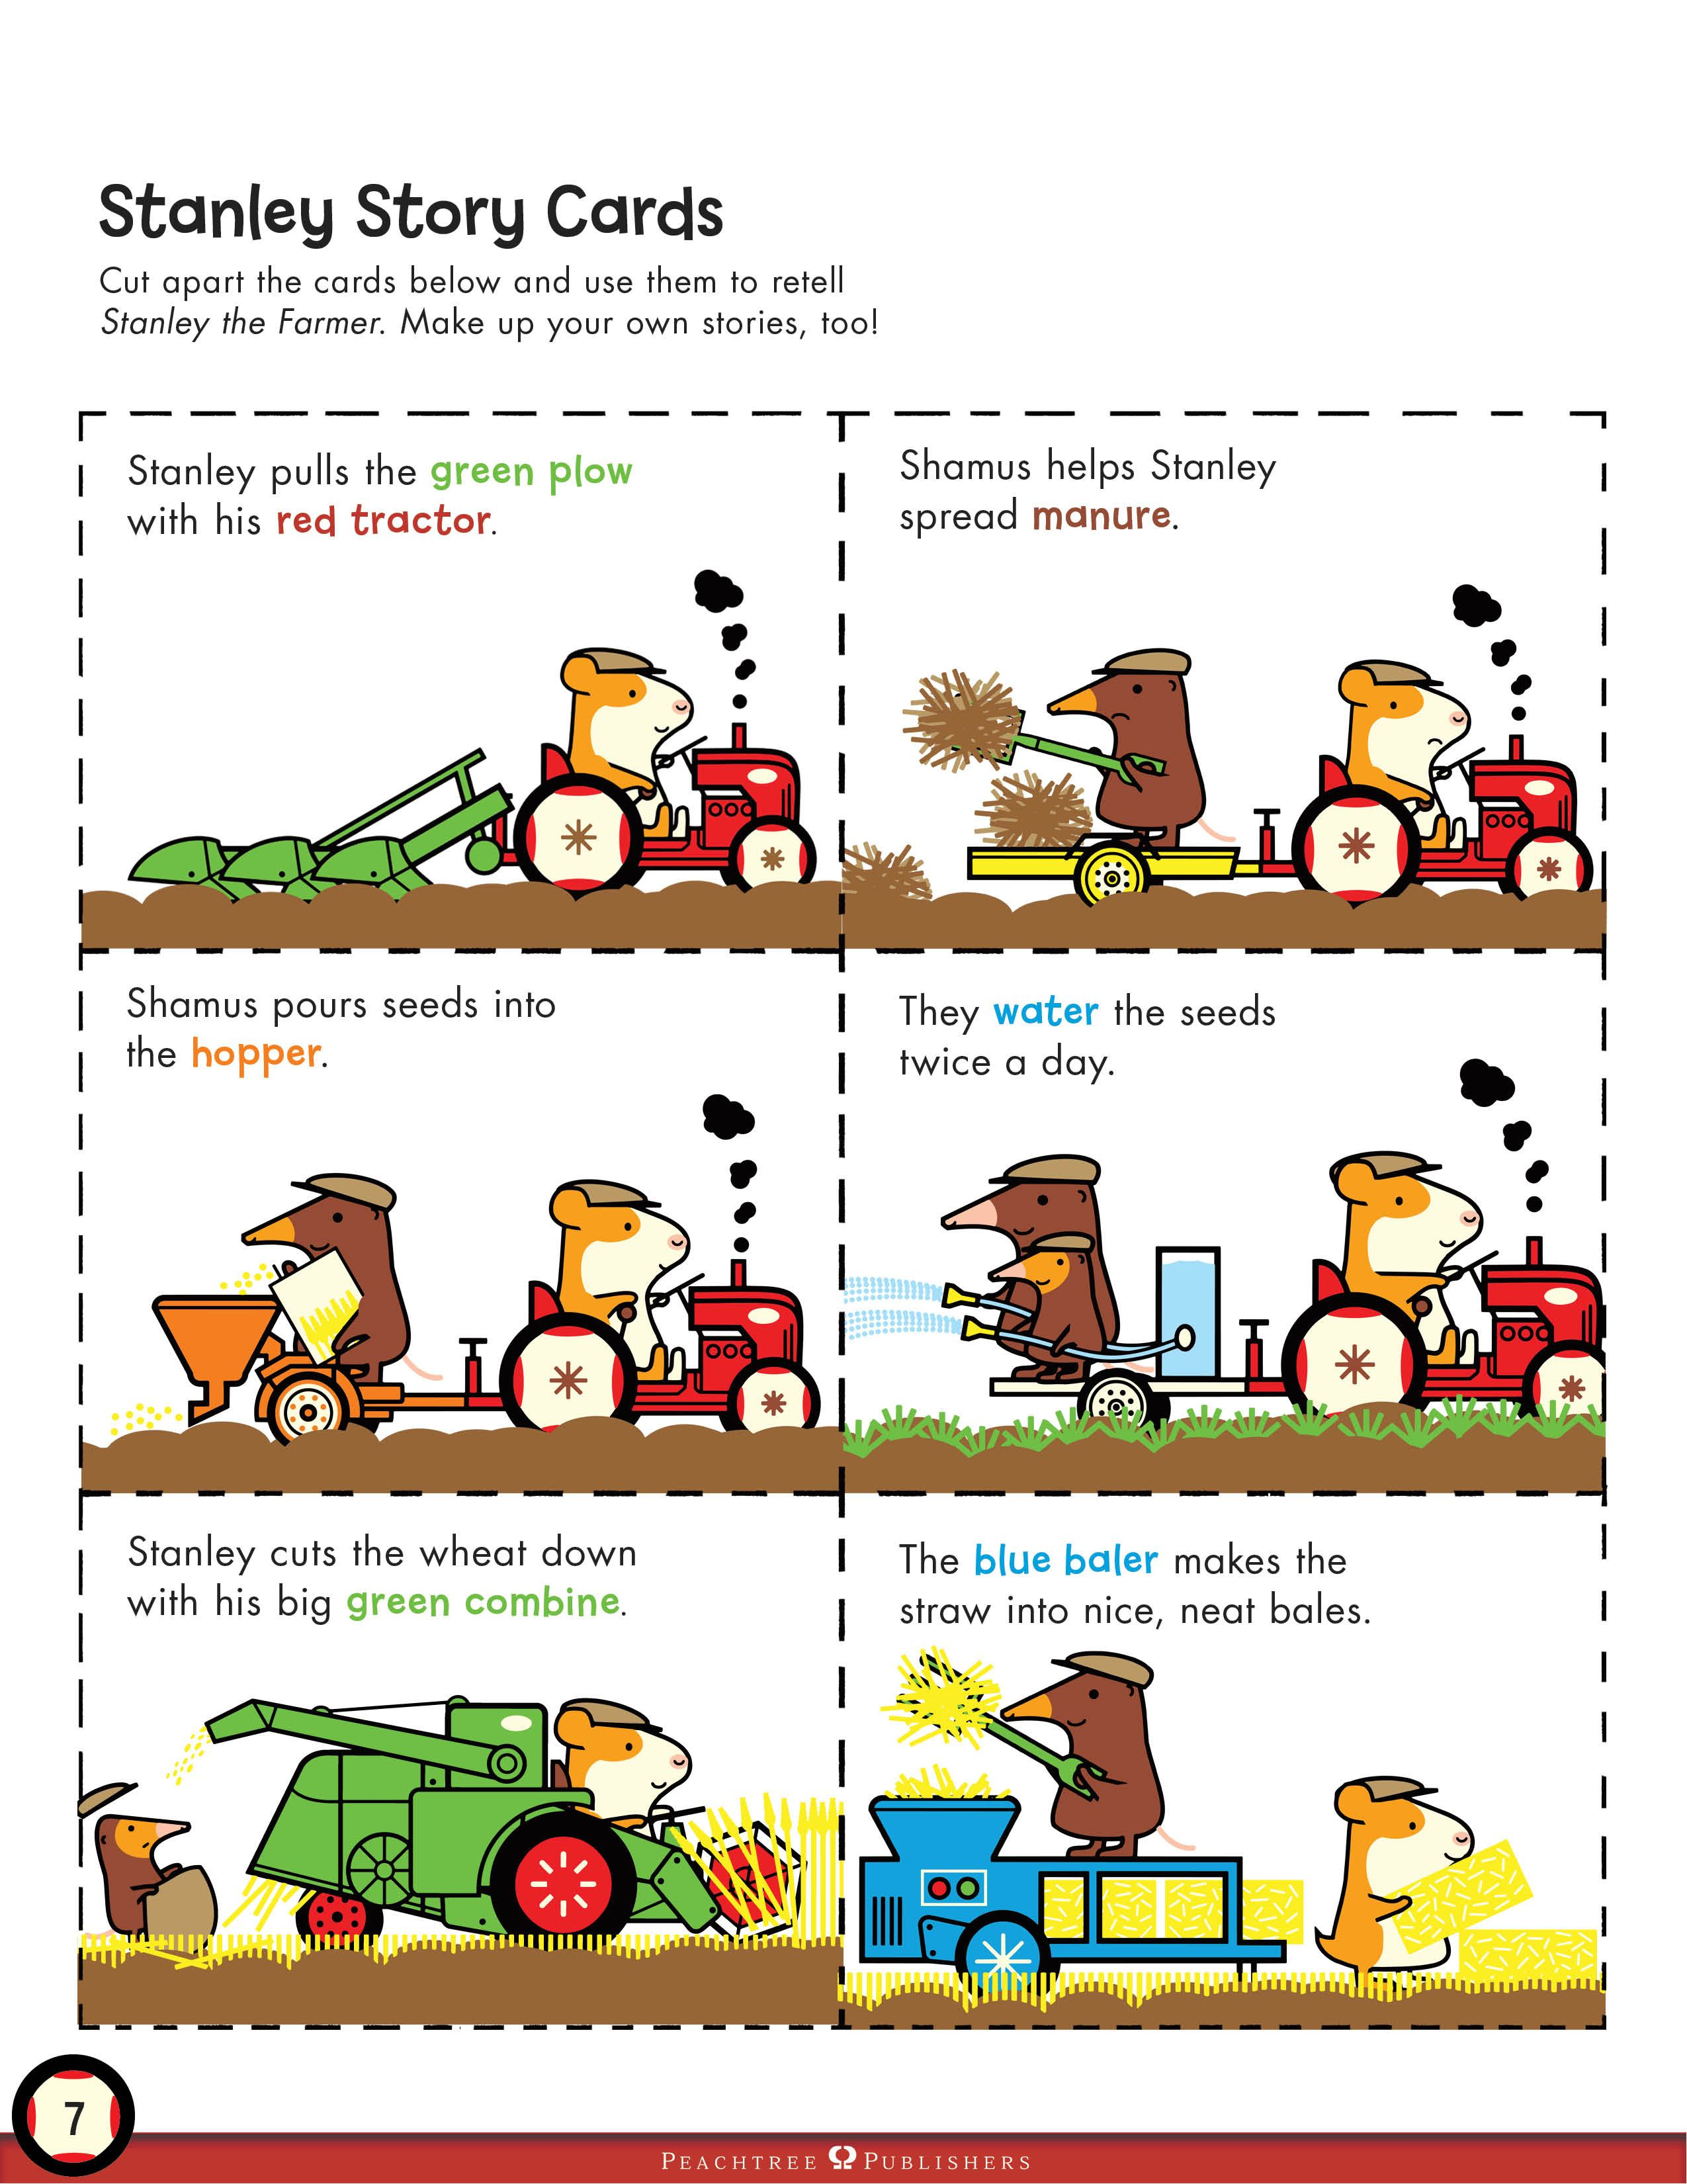 Stanley The Farmer Story Cards Print Out These Cards To